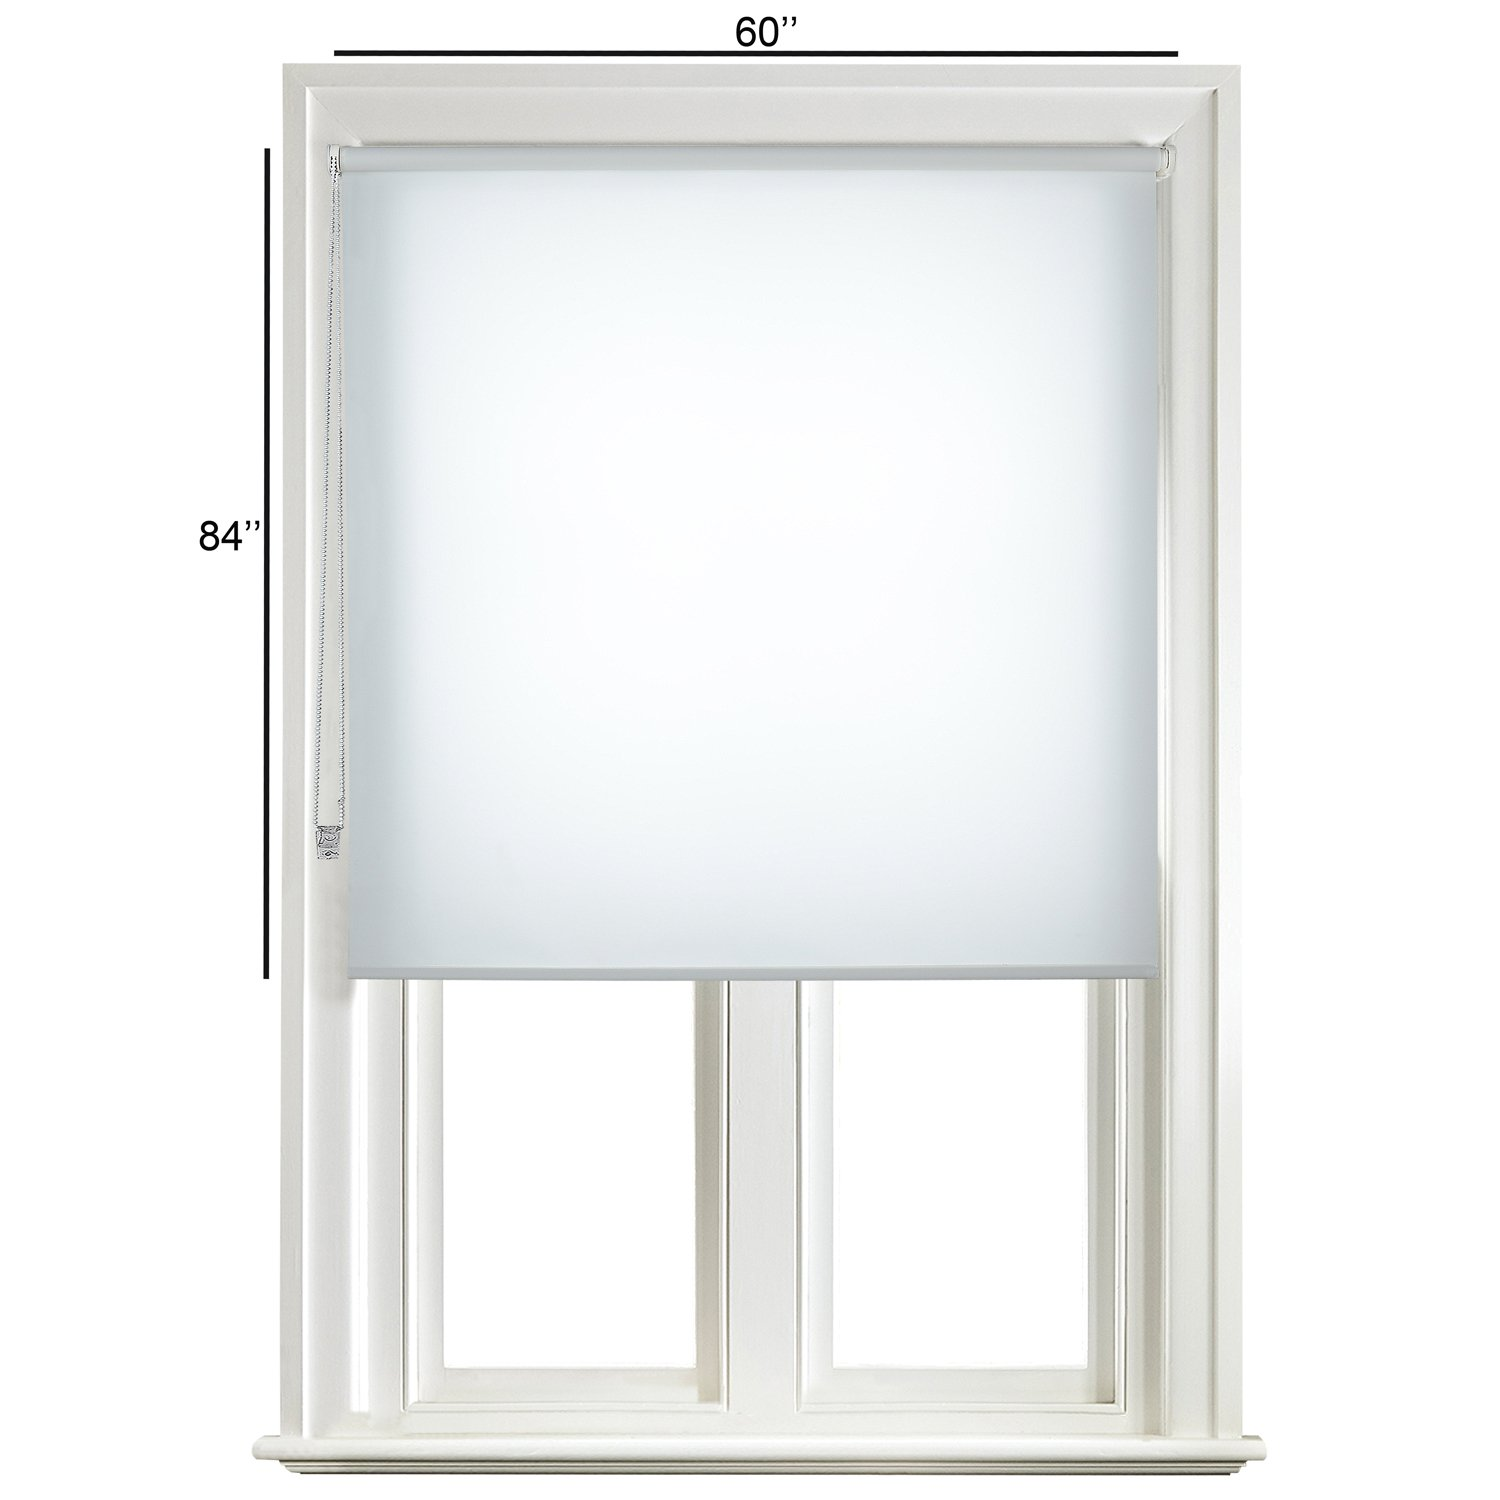 Buy Deco Window Roller Blind 60(W) X84(L) White Online At Low